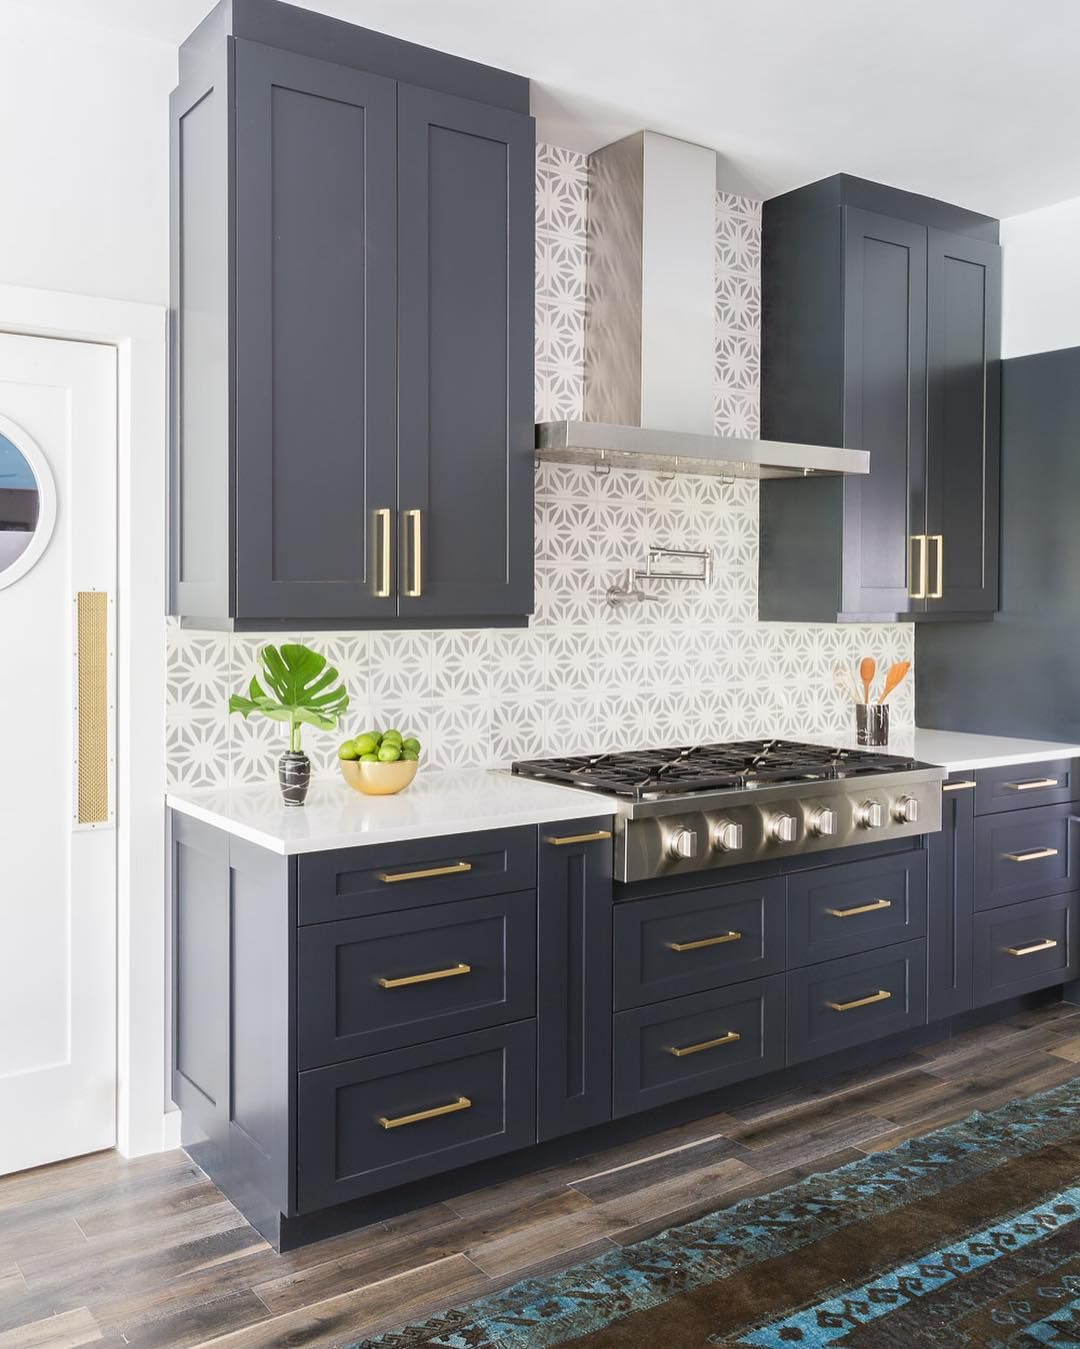 a kitchen we designed and worked in tandem with elizabeth mollen